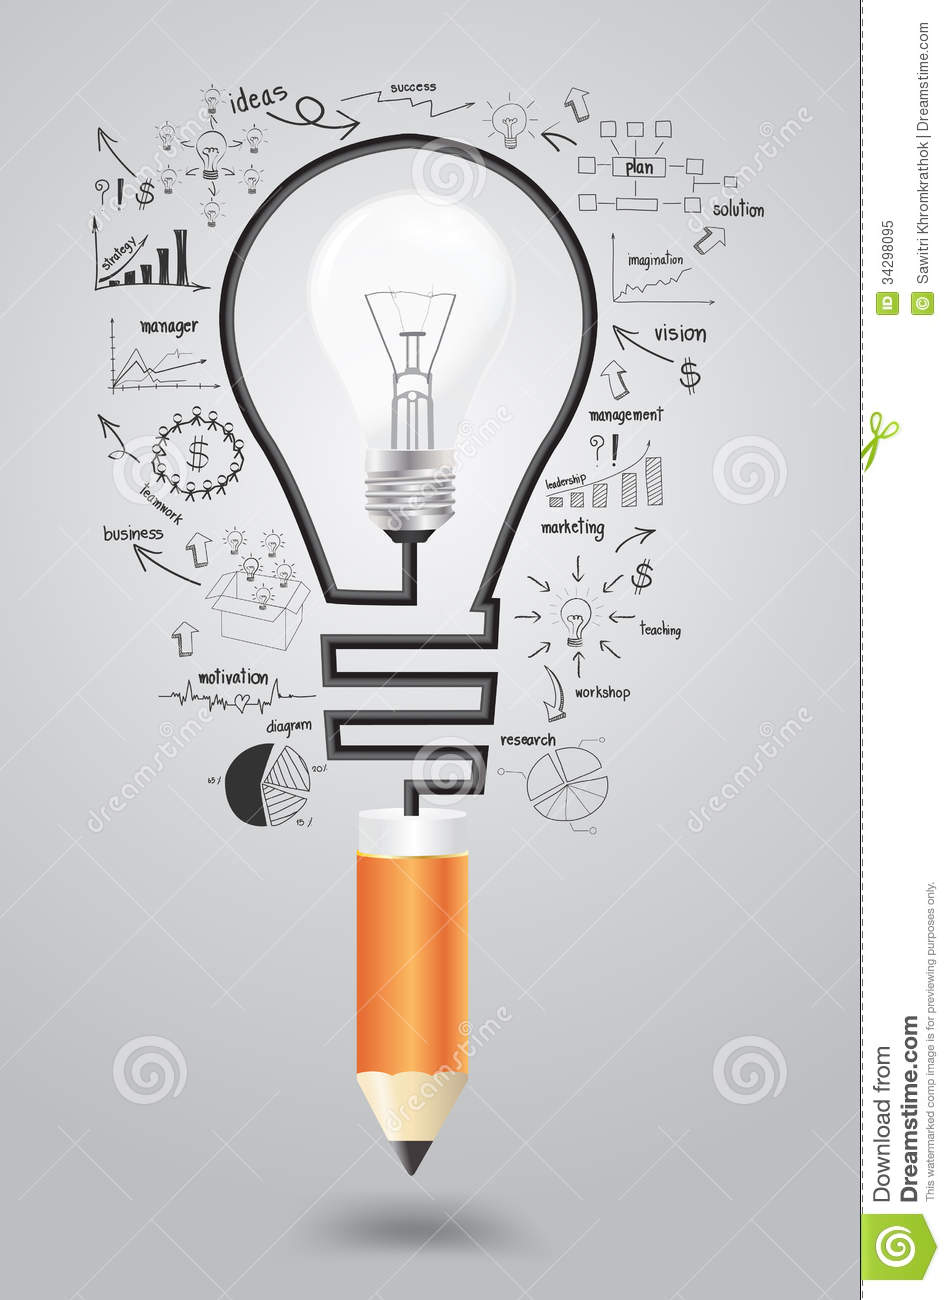 Vector Business Strategy Plan Concept Idea Royalty Free Stock Photo ...